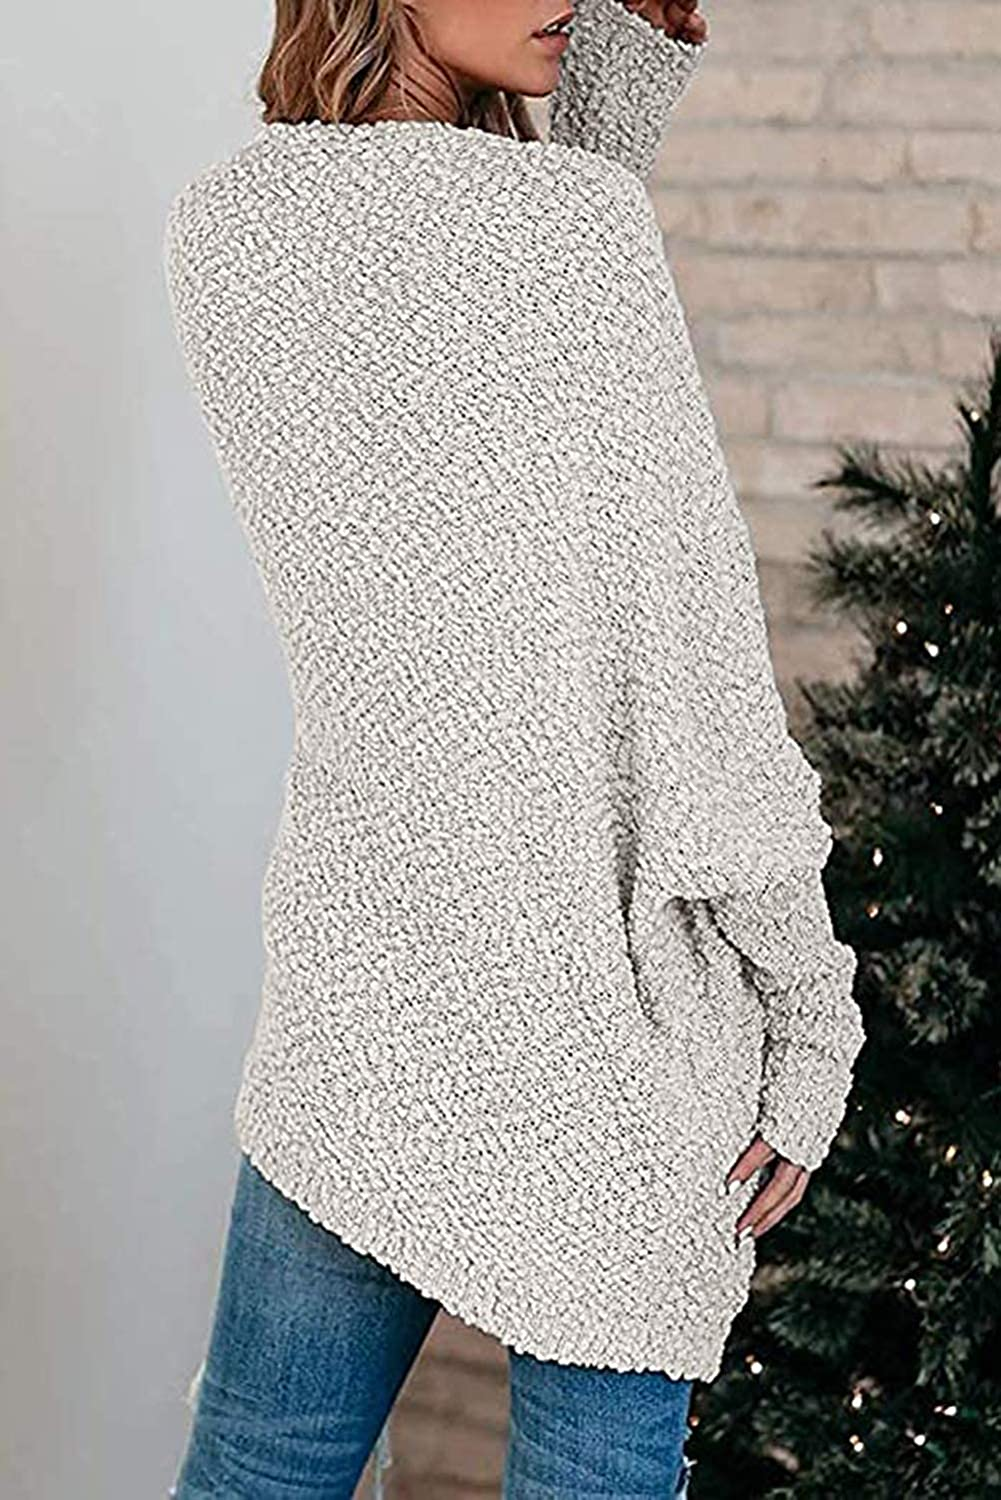 ZESICA Women's Popcorn Long Sleeve Open Front Chunky Knit Oversized Cardigan Sweater Coat with Pockets